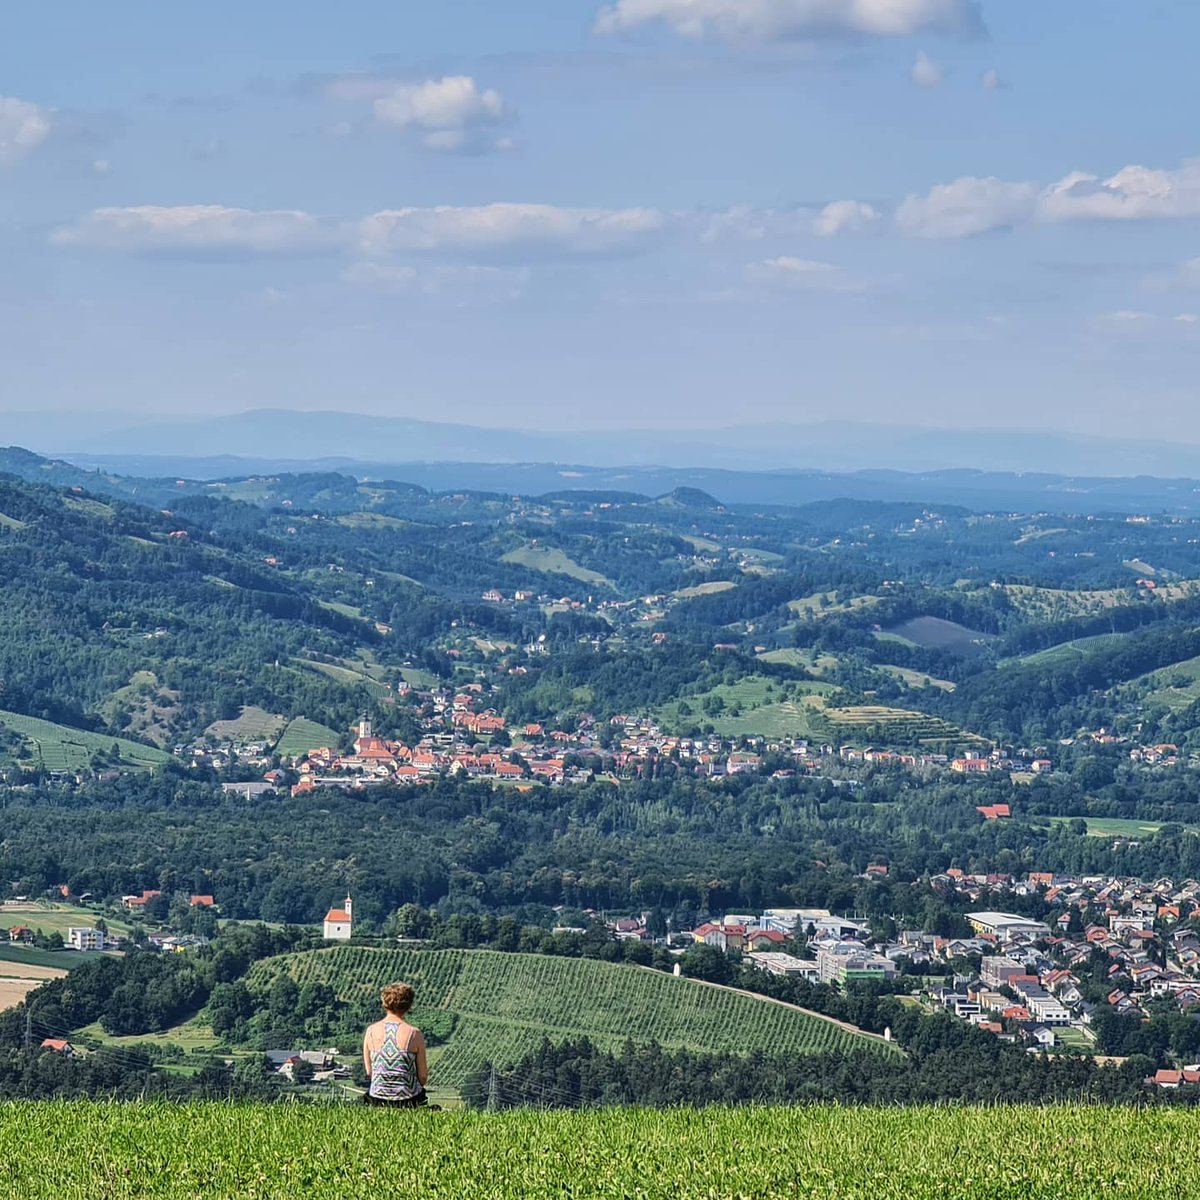 Resting With a View  #sunnyday #hiking #rest #peace #panorama #rooftops #skislope #Pohorje #skiingresort #summer #view #Maribor #styria #Slovenia #EU #europe #life #joy #woman #people #hills #hike #tour #nature #beauty #ThisIsSlovenia #visitslovenia